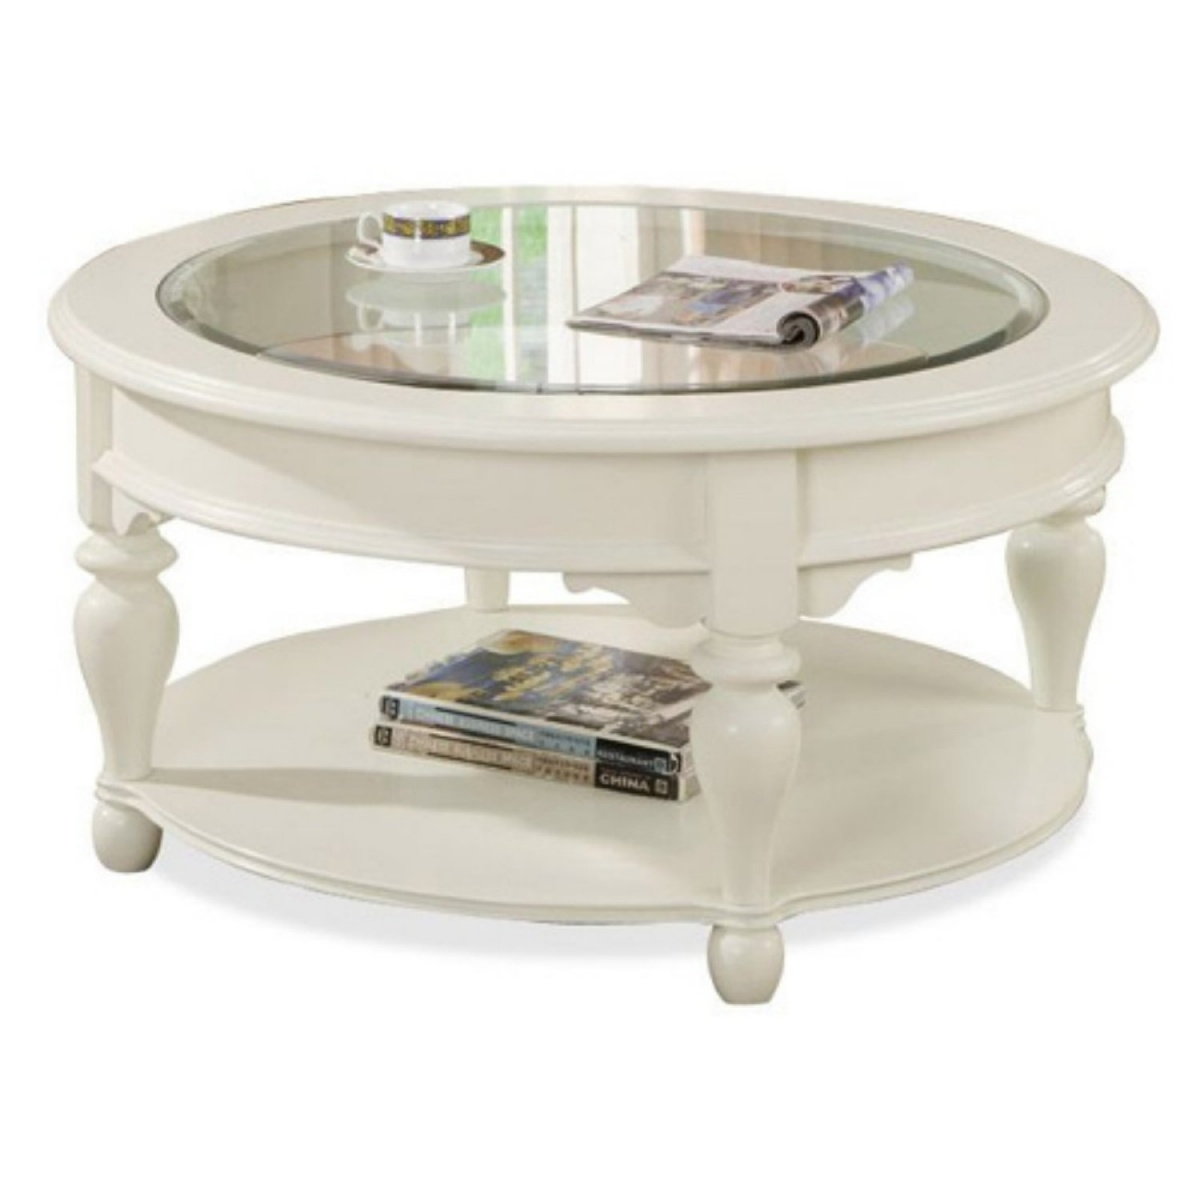 Round Coffee Table With Storage The Round Coffee Tables With Storage The Simple And